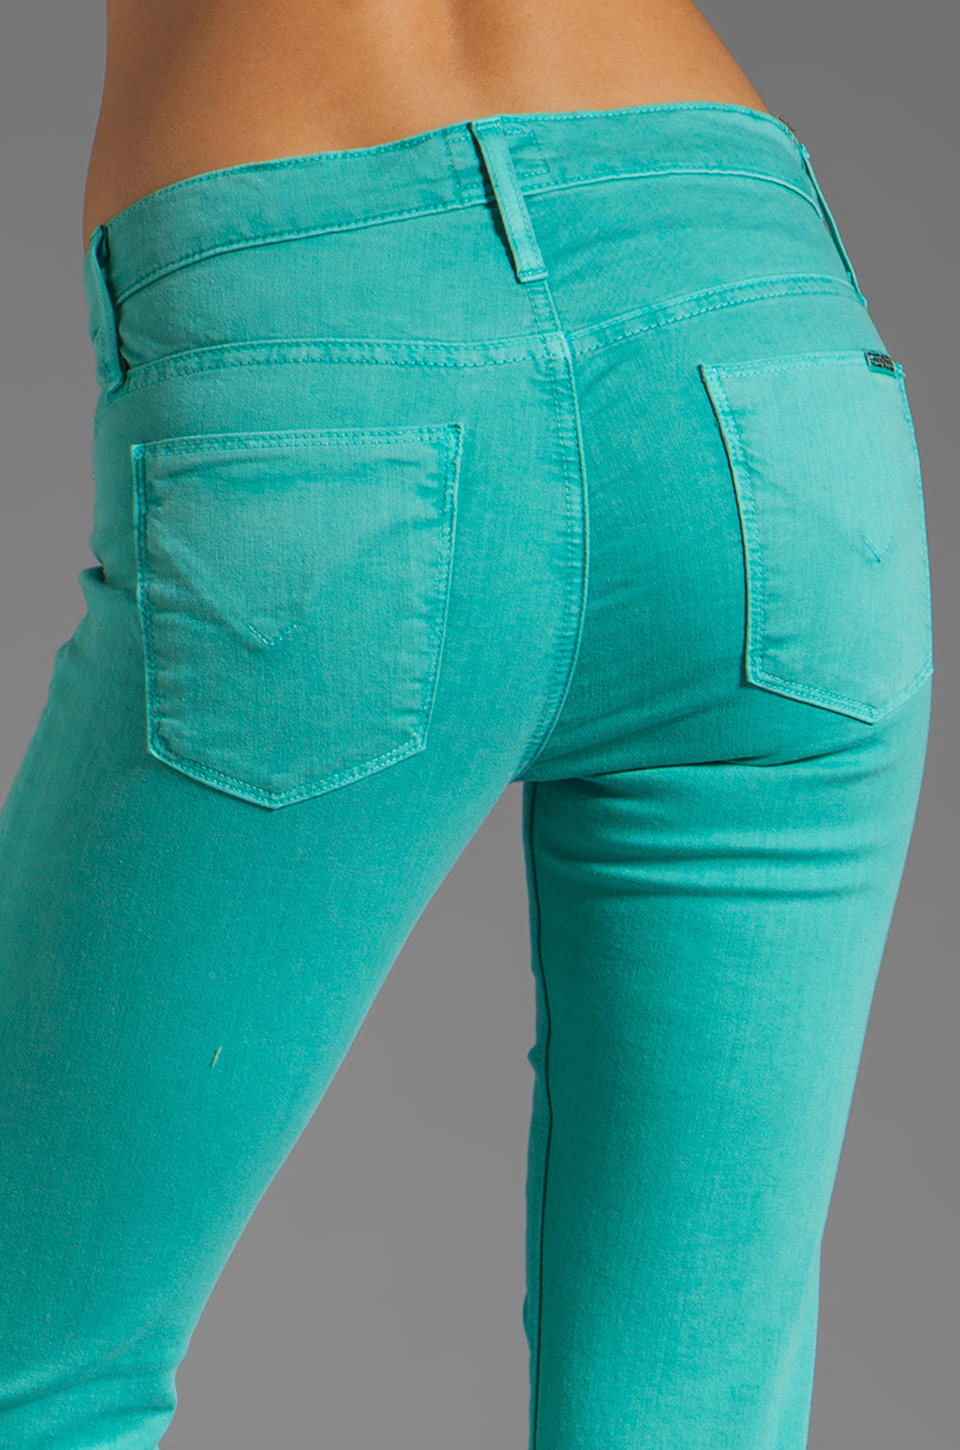 Hudson Jeans Nico Midrise Super Skinny in Soft Teal